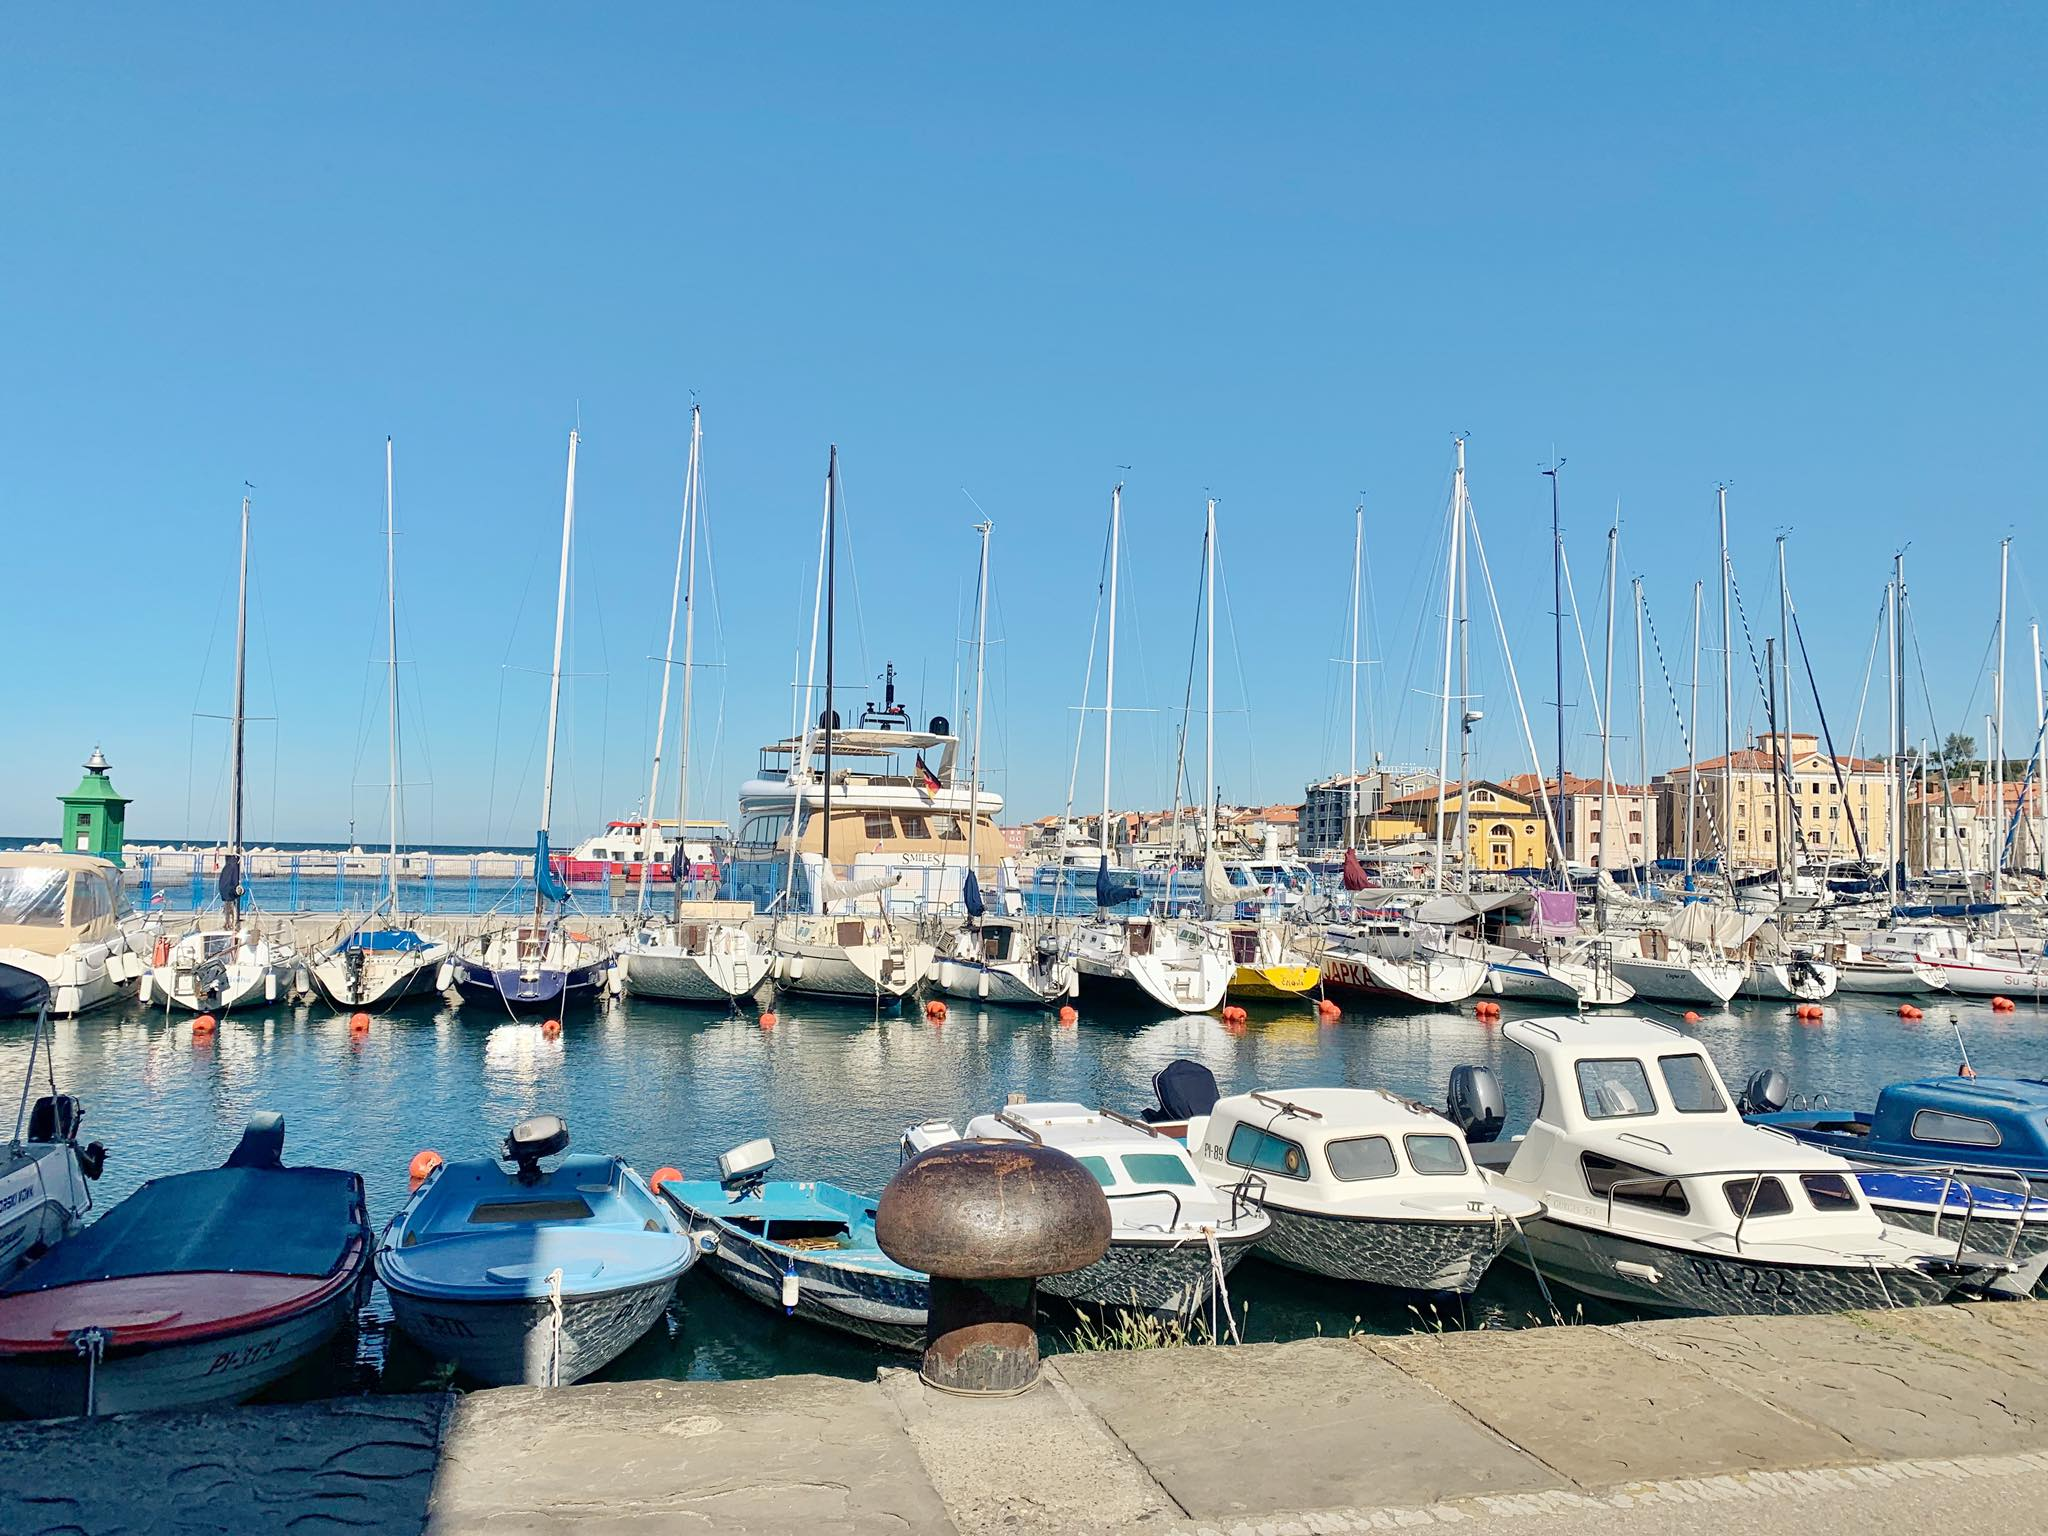 Life On The Road Day 132 Now we're in this beautiful town beside the Adriatic sea2.jpg